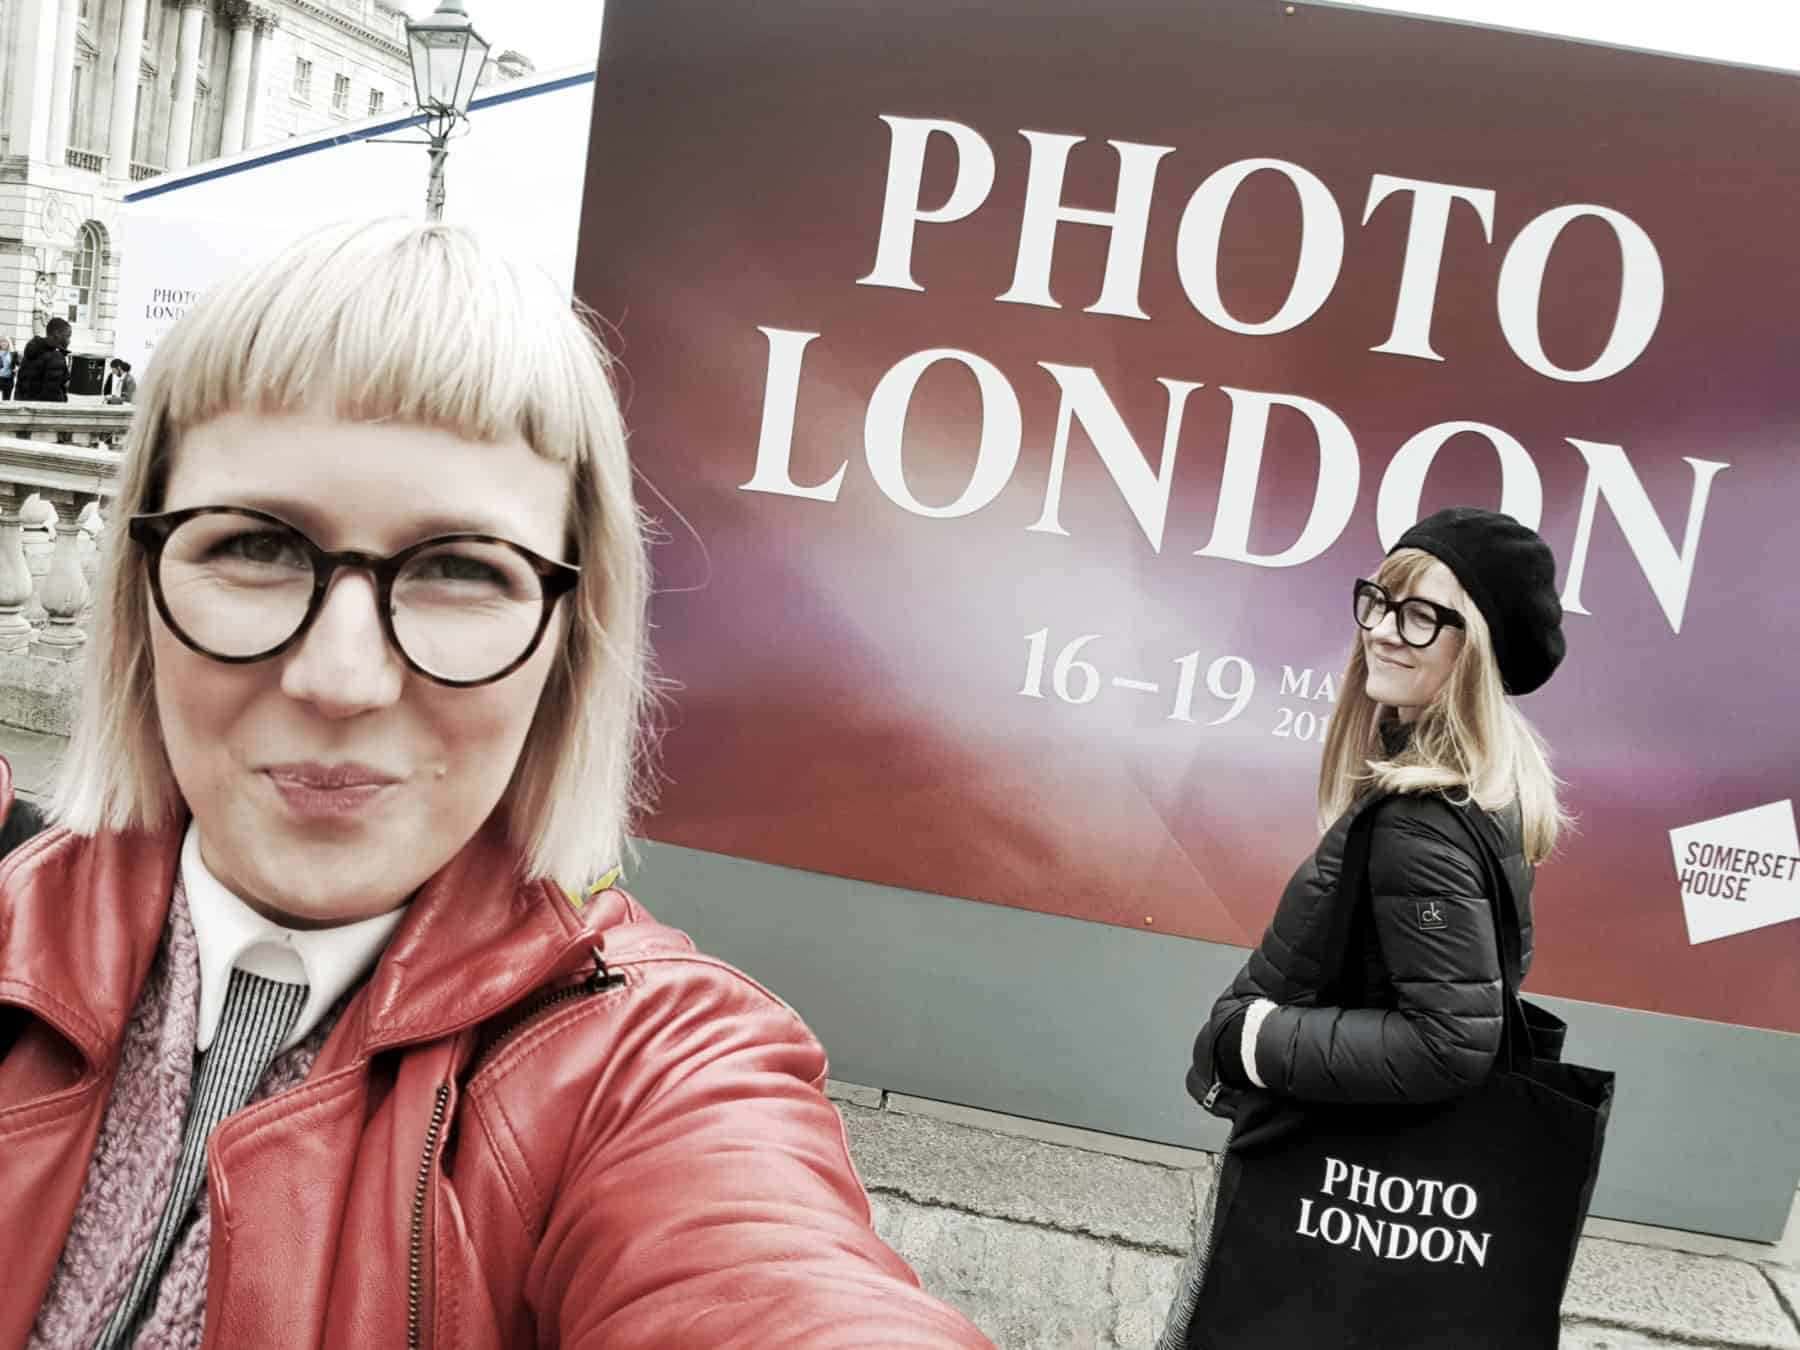 Photo London 2019 1 Galeria LueLue